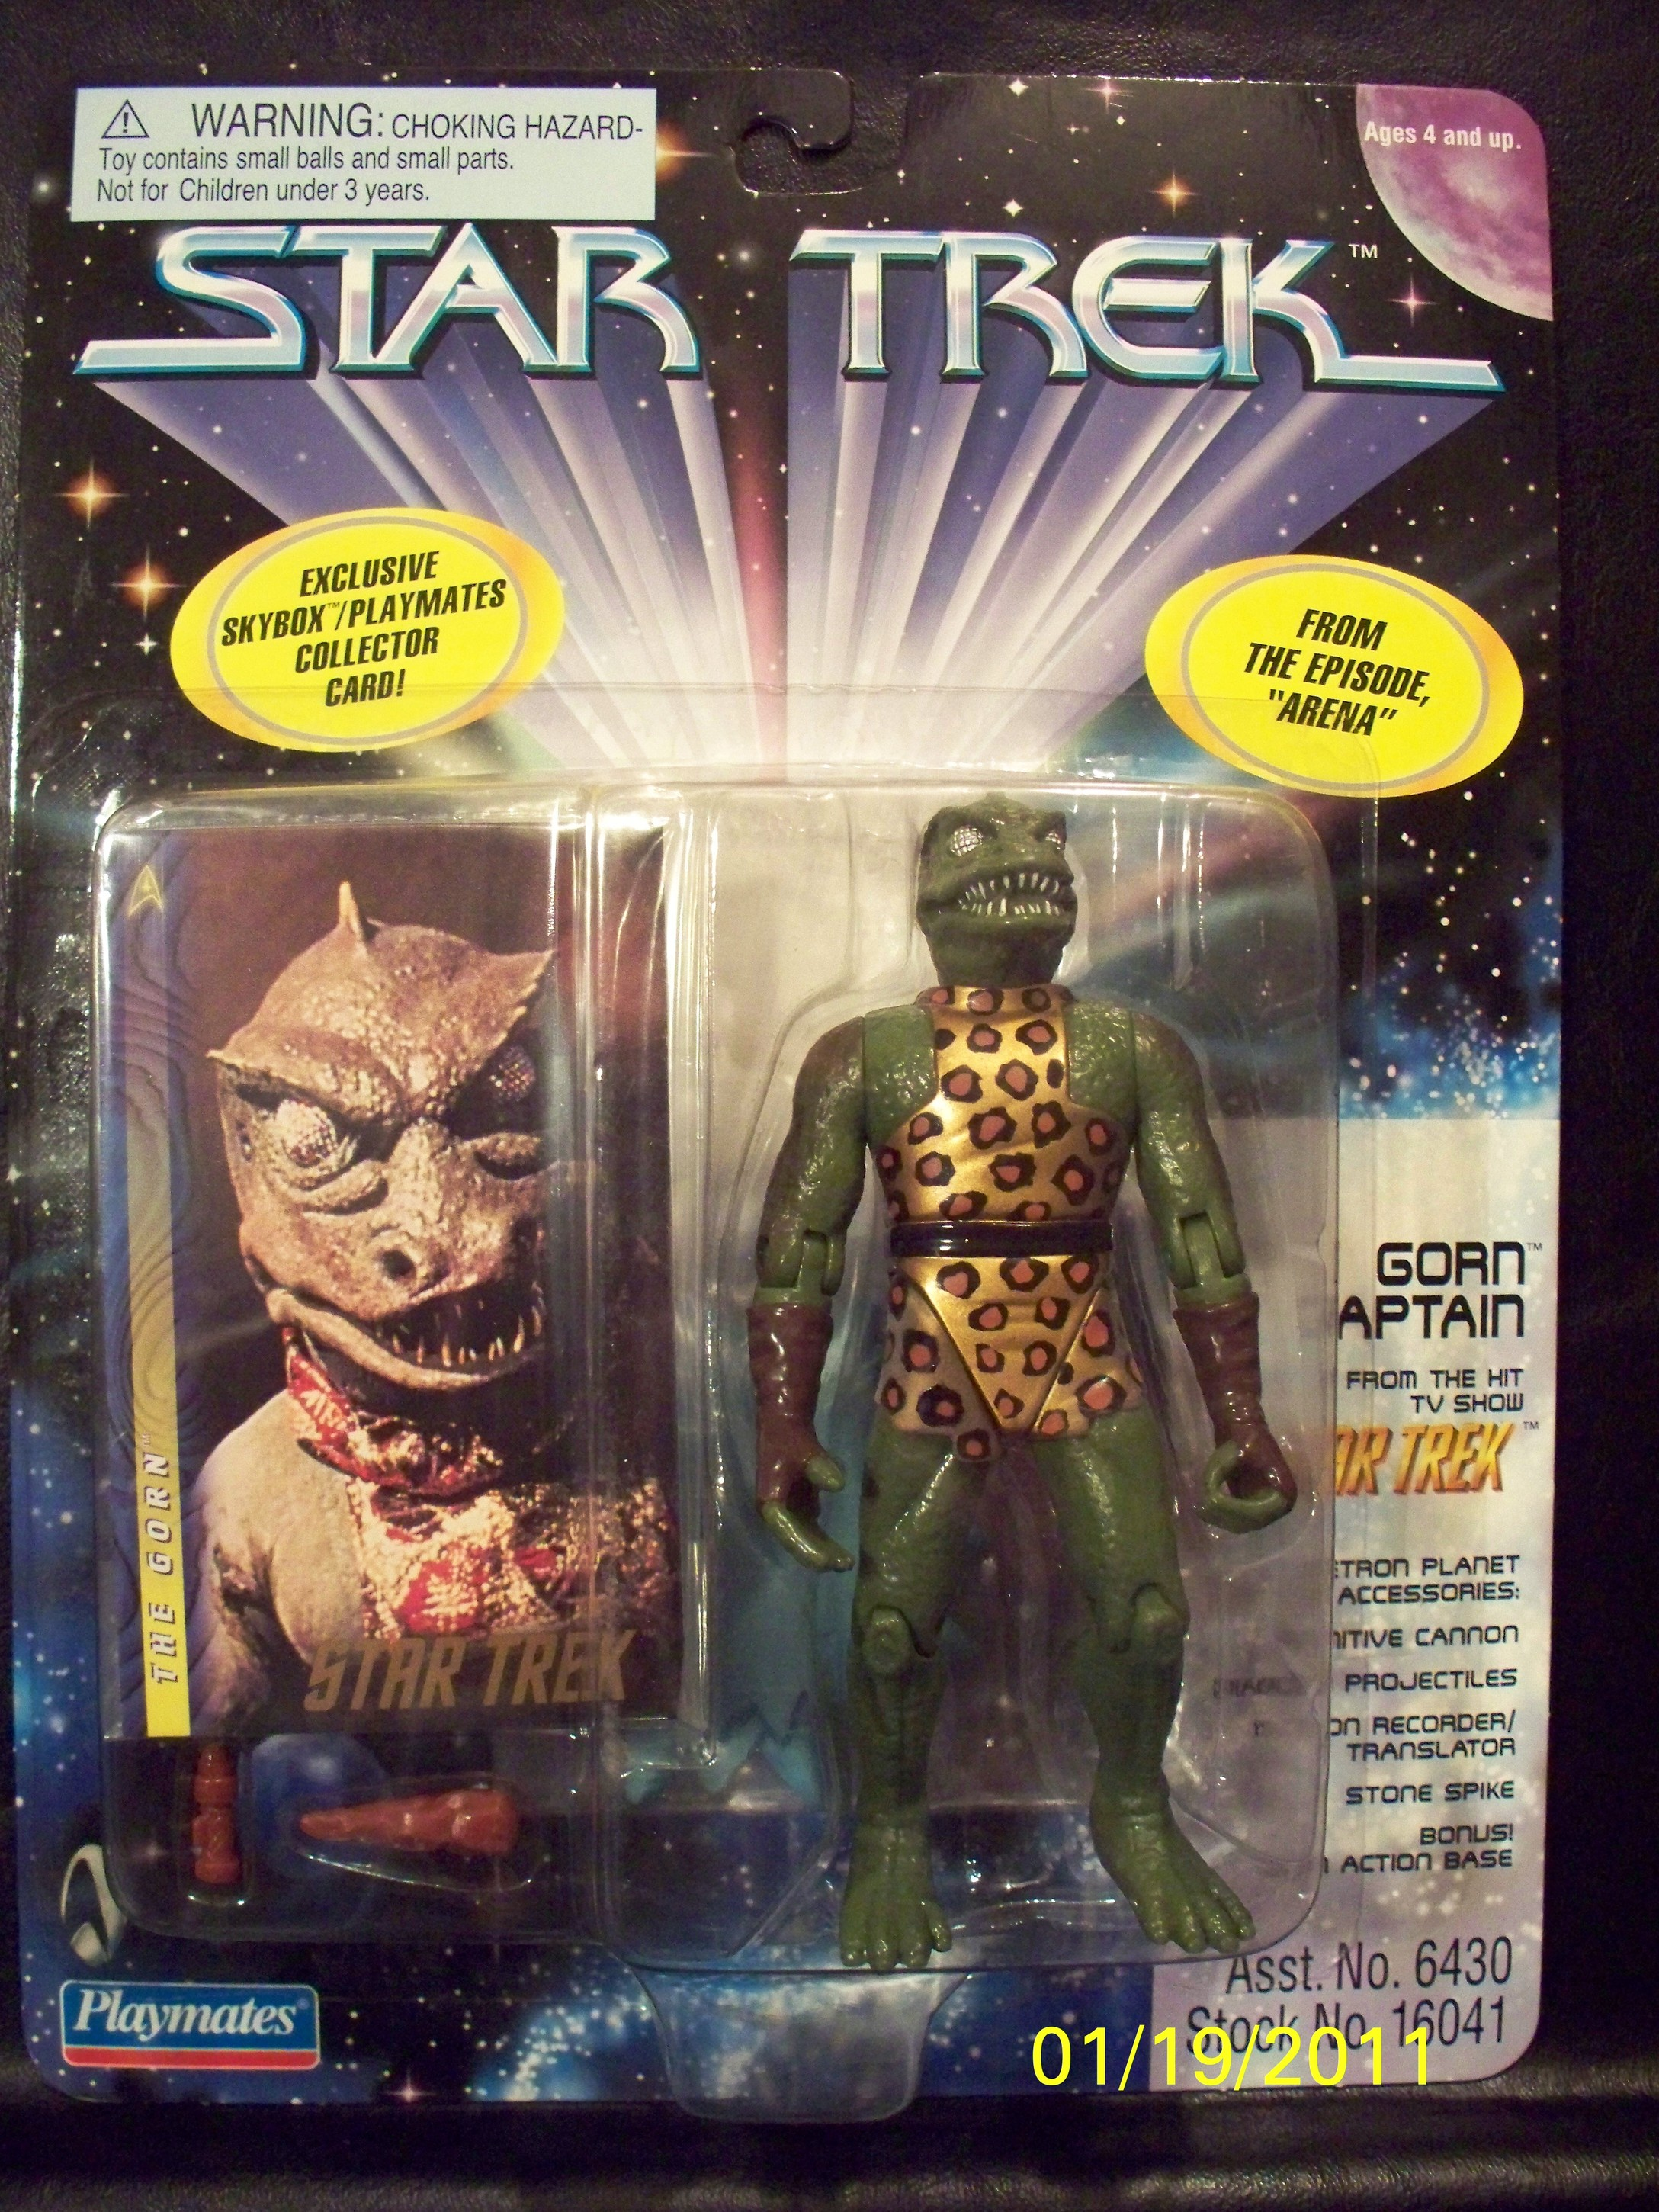 Gorn Captain